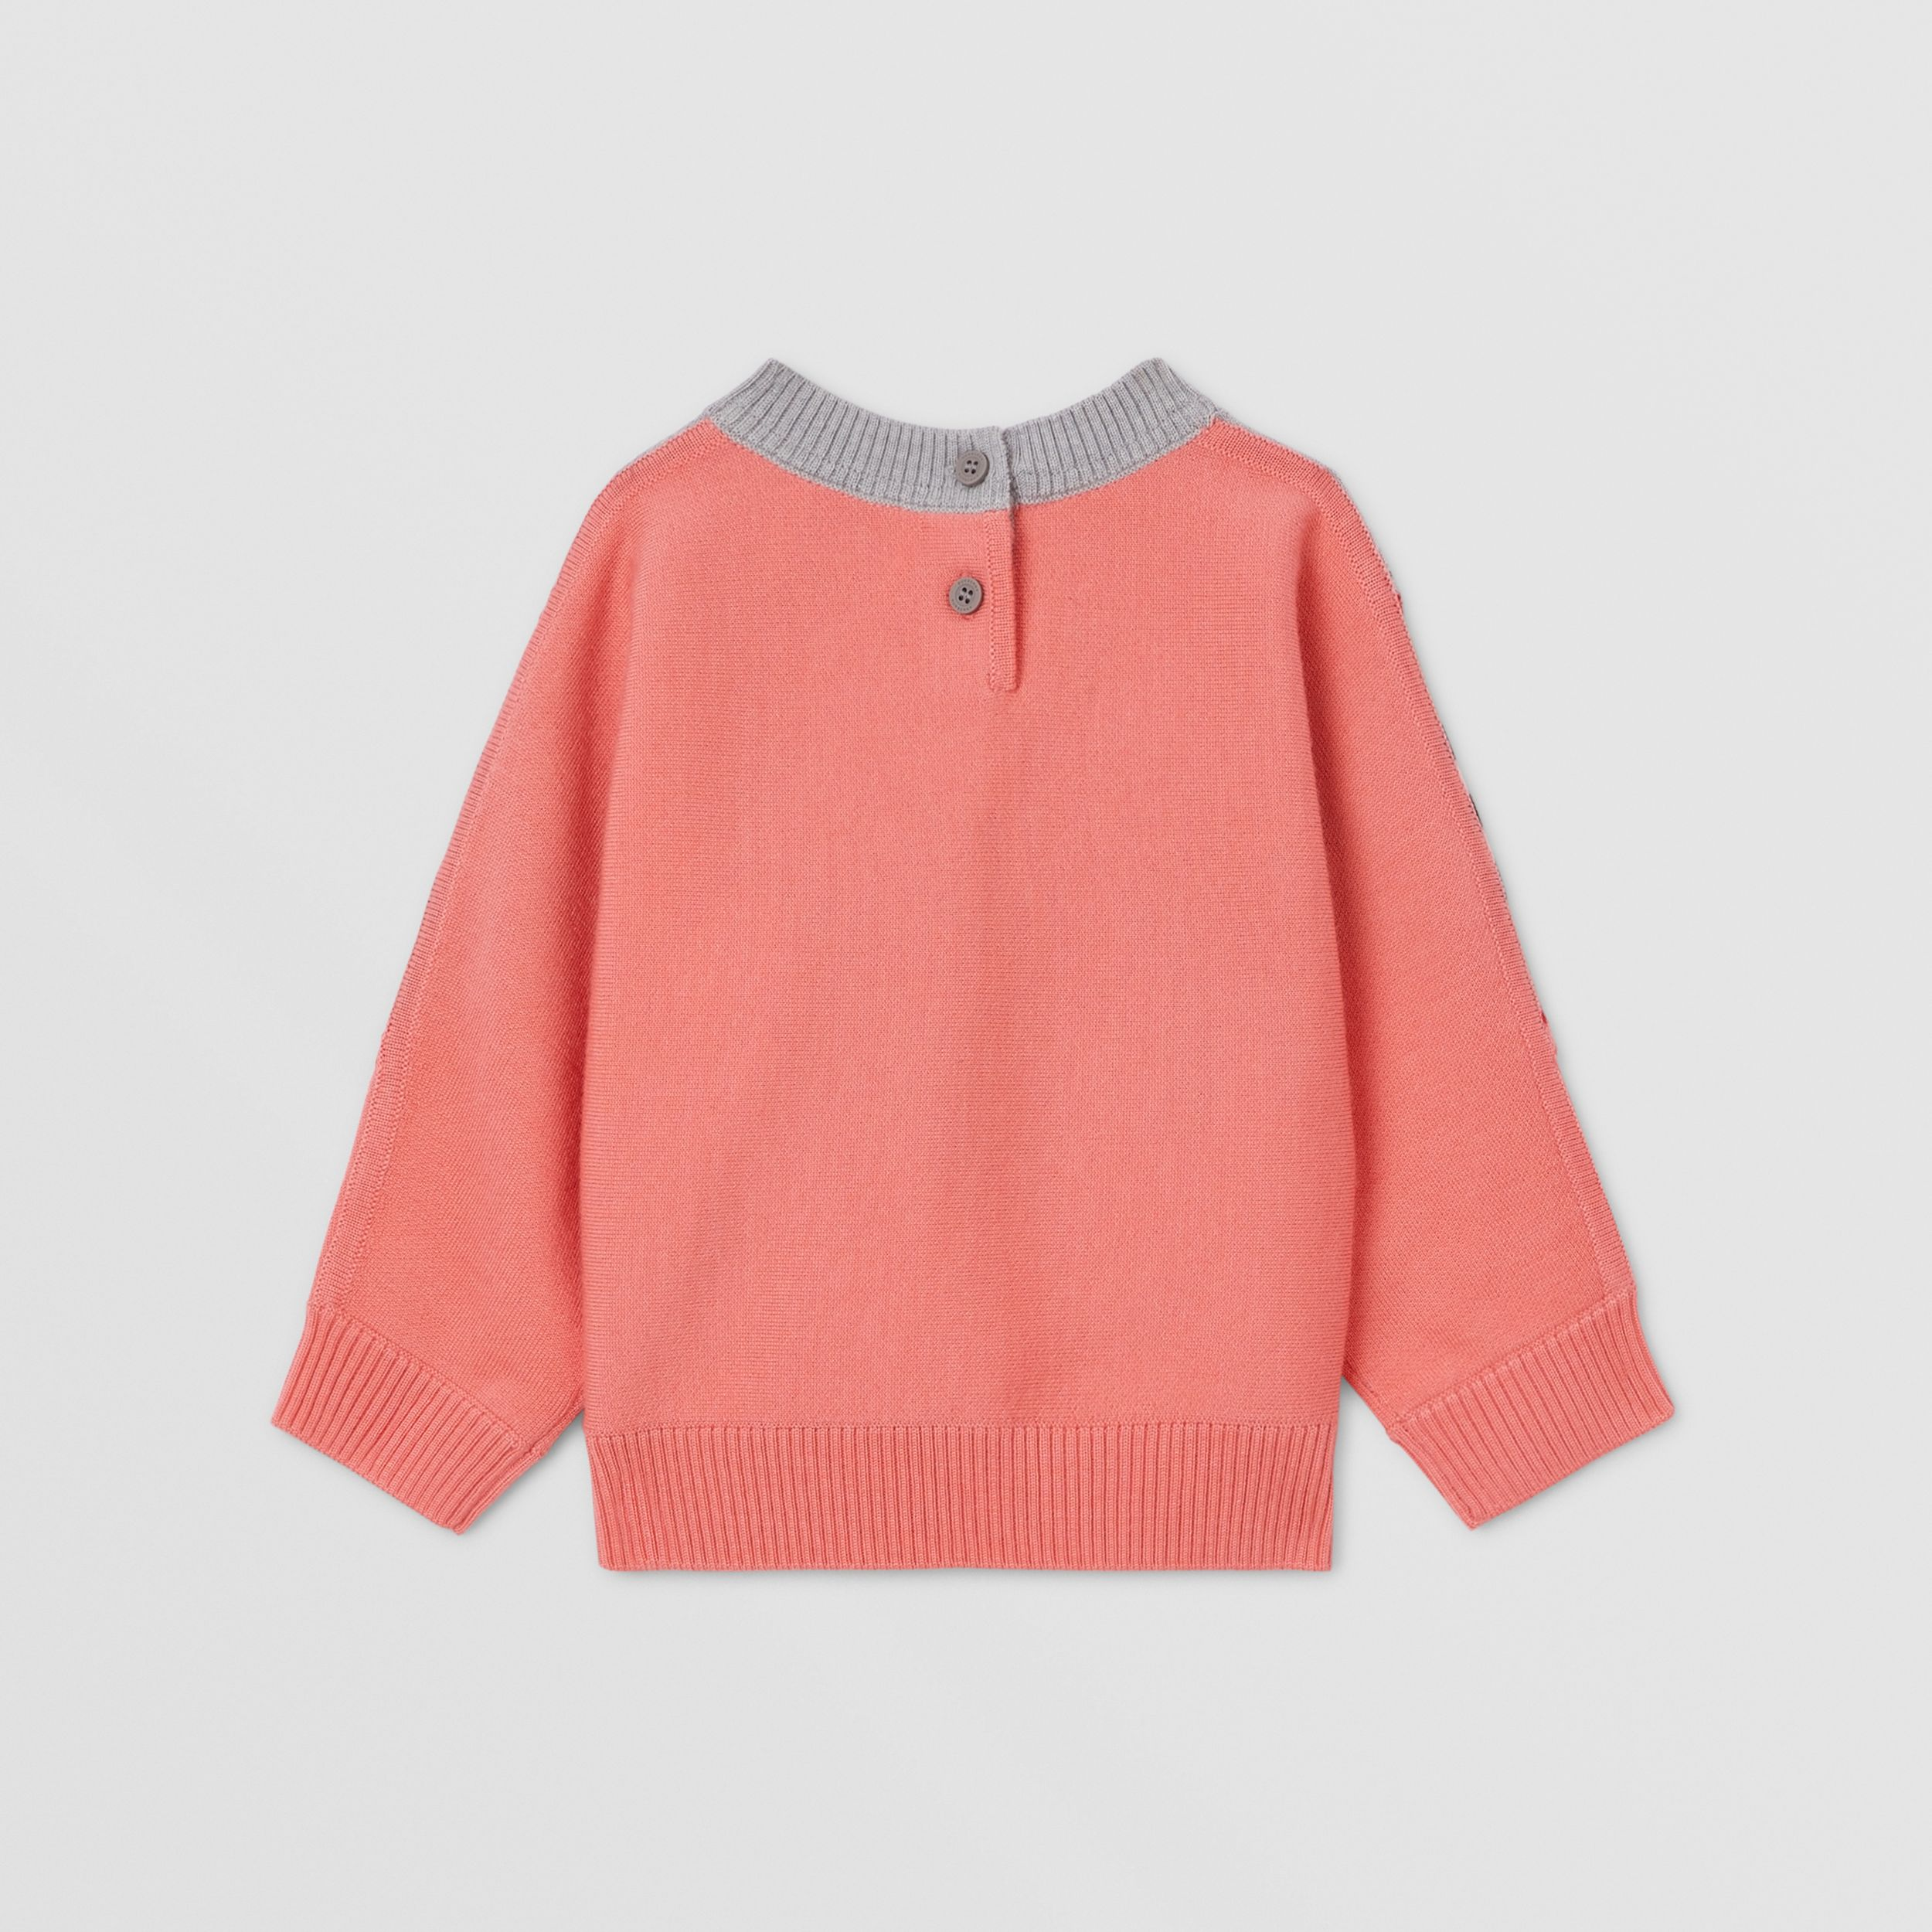 Unicorn Embroidered Technical Wool Sweater in Peach - Children | Burberry - 4